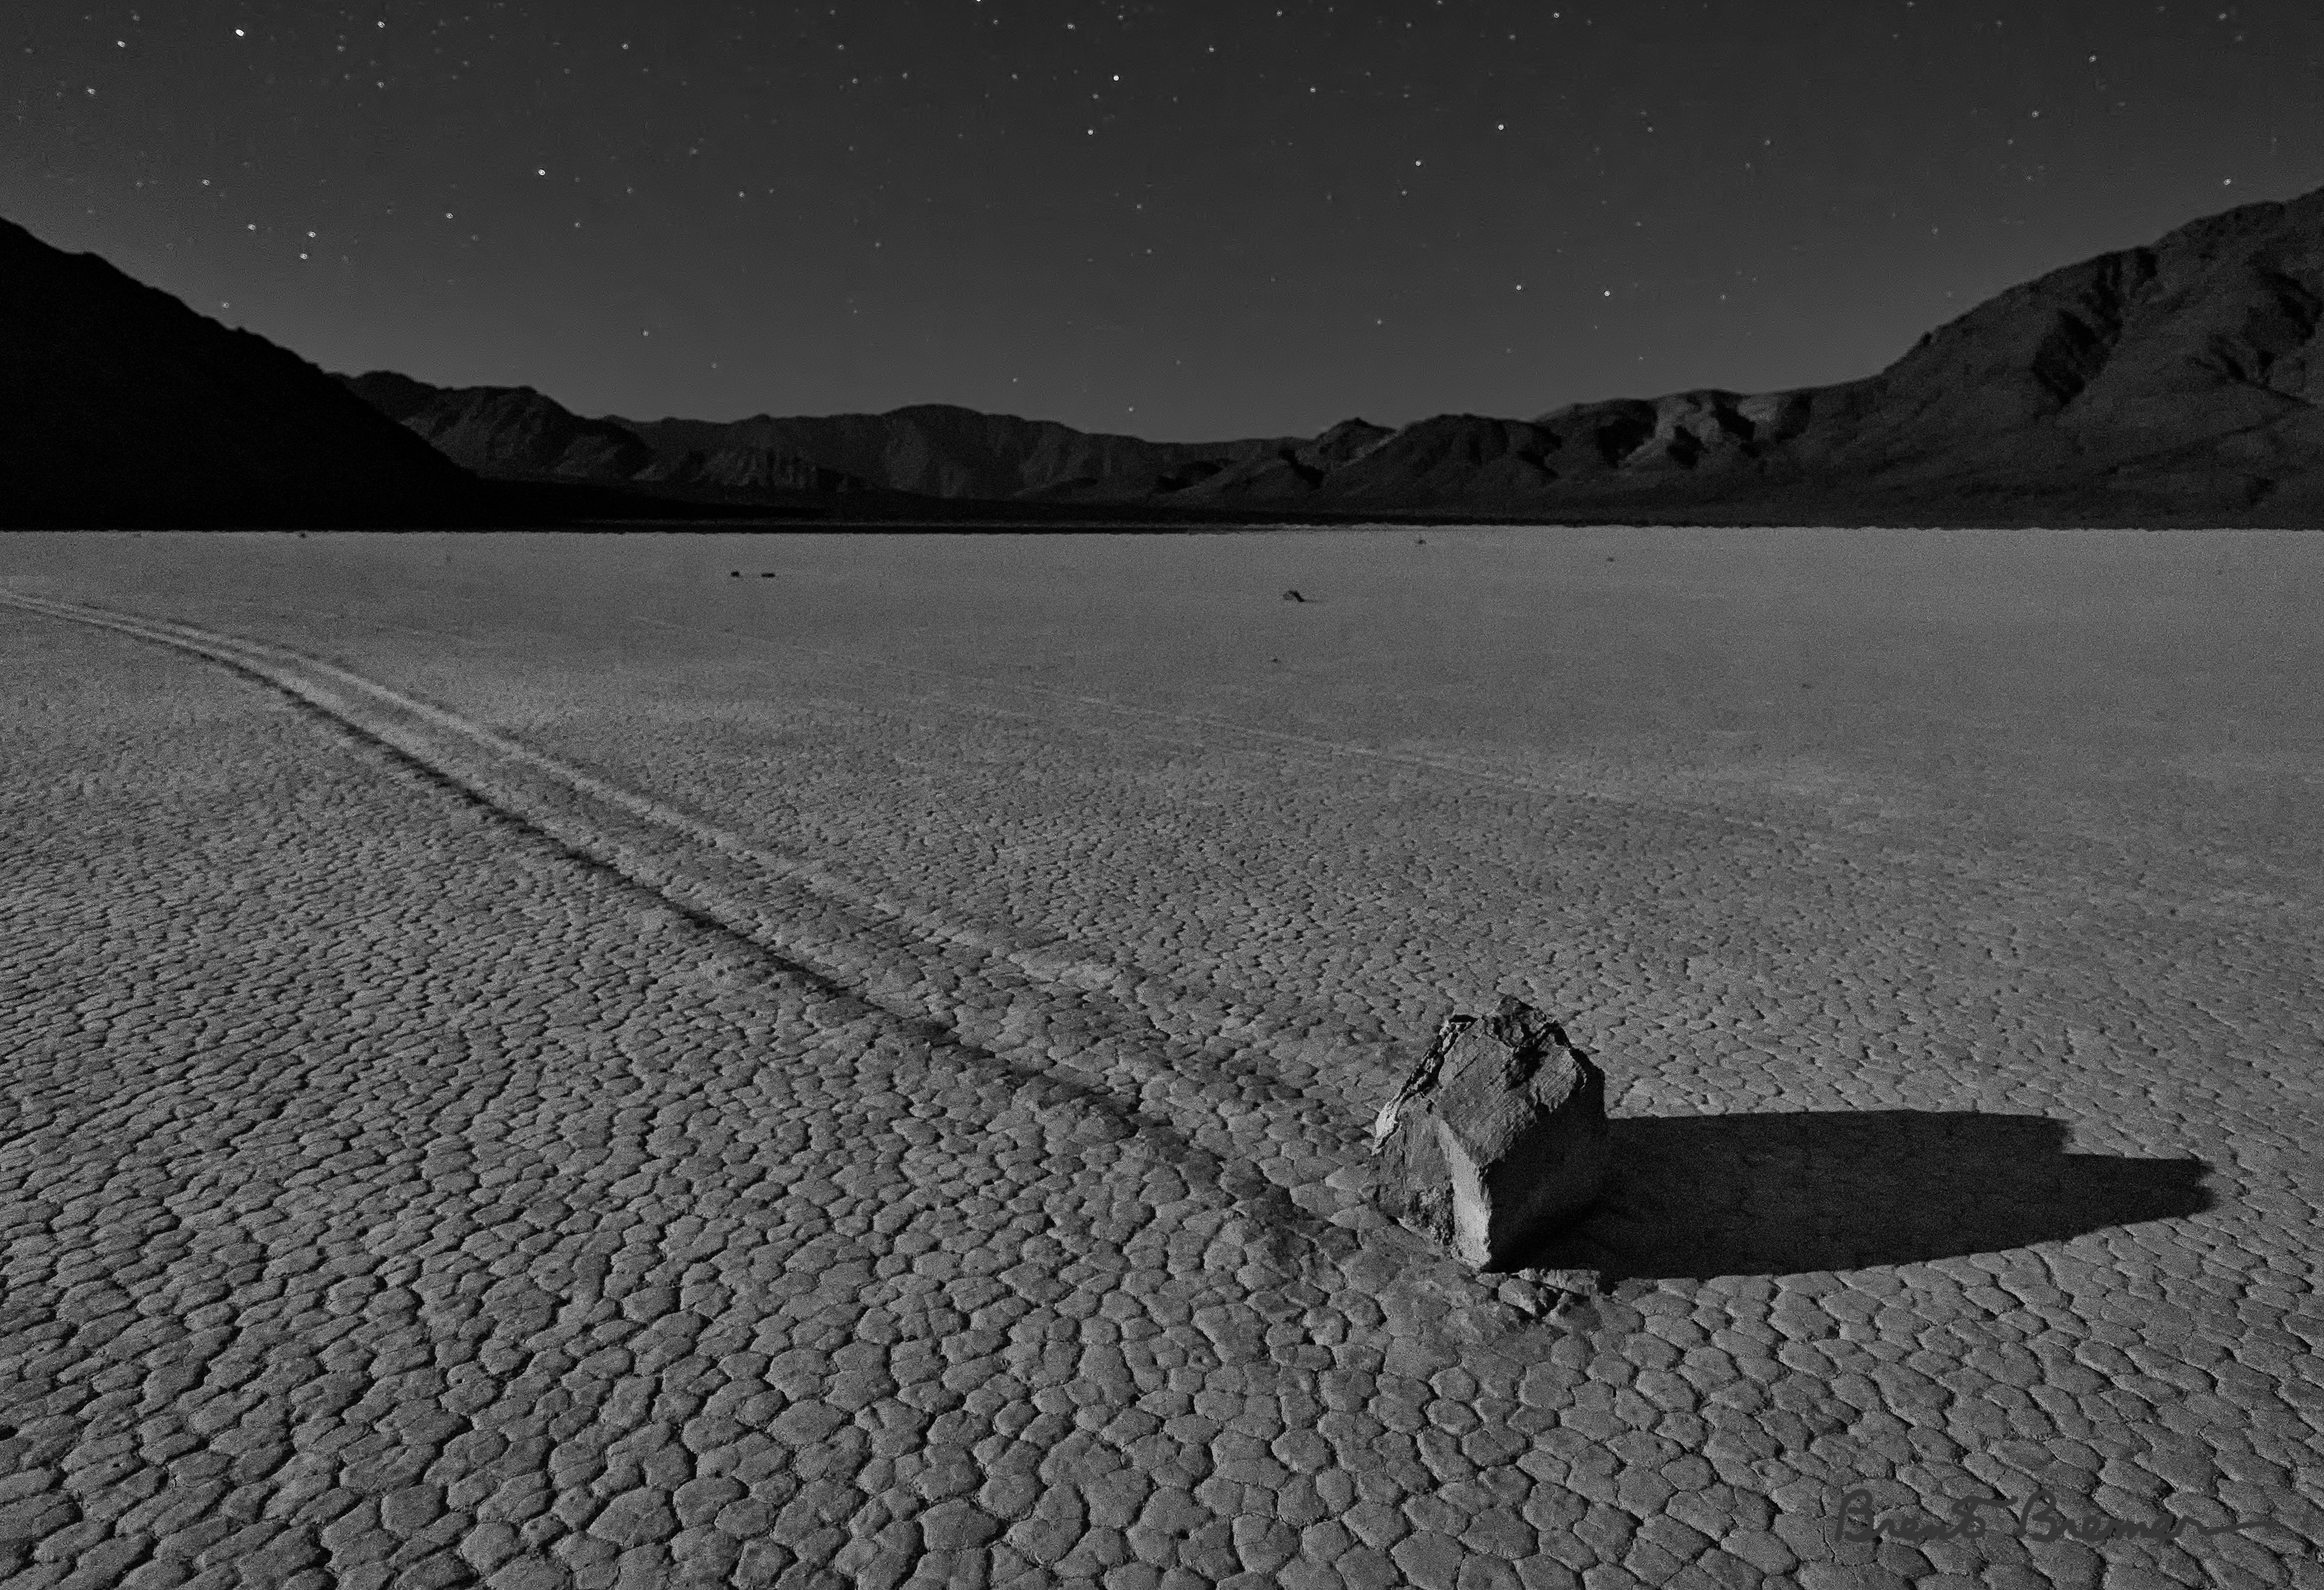 Moonlit Racetrack Playa - Brent Bremer